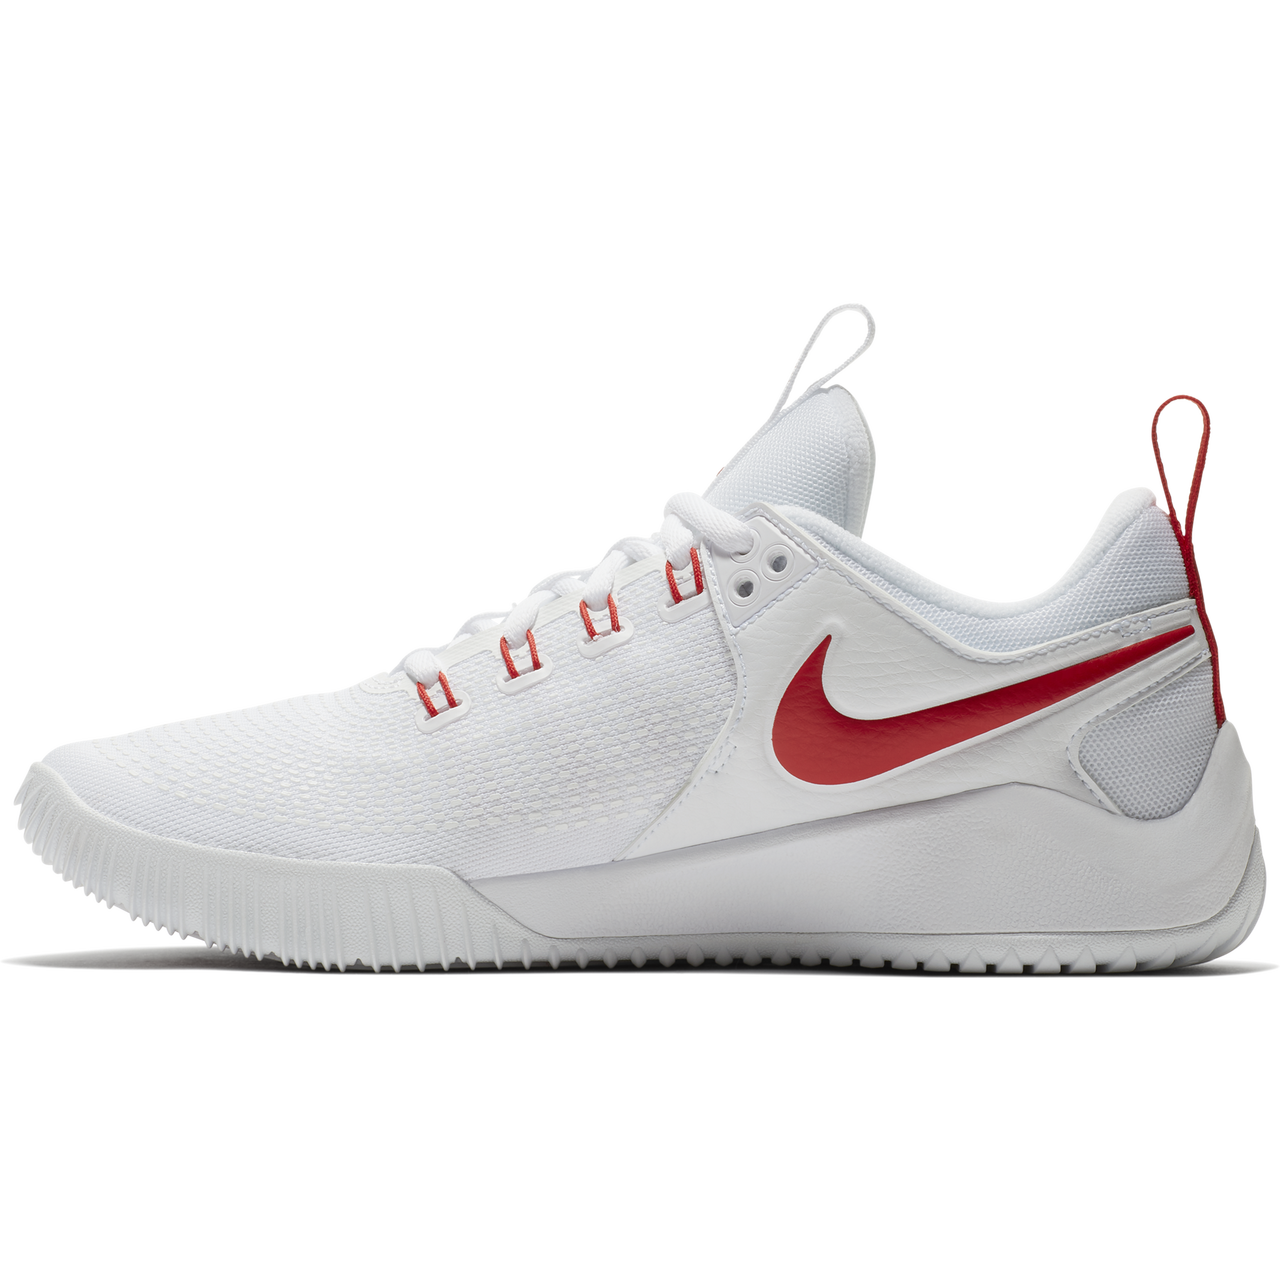 6703e79b8bf8 Nike Women s Zoom HyperAce 2 Volleyball Shoe - White University Red